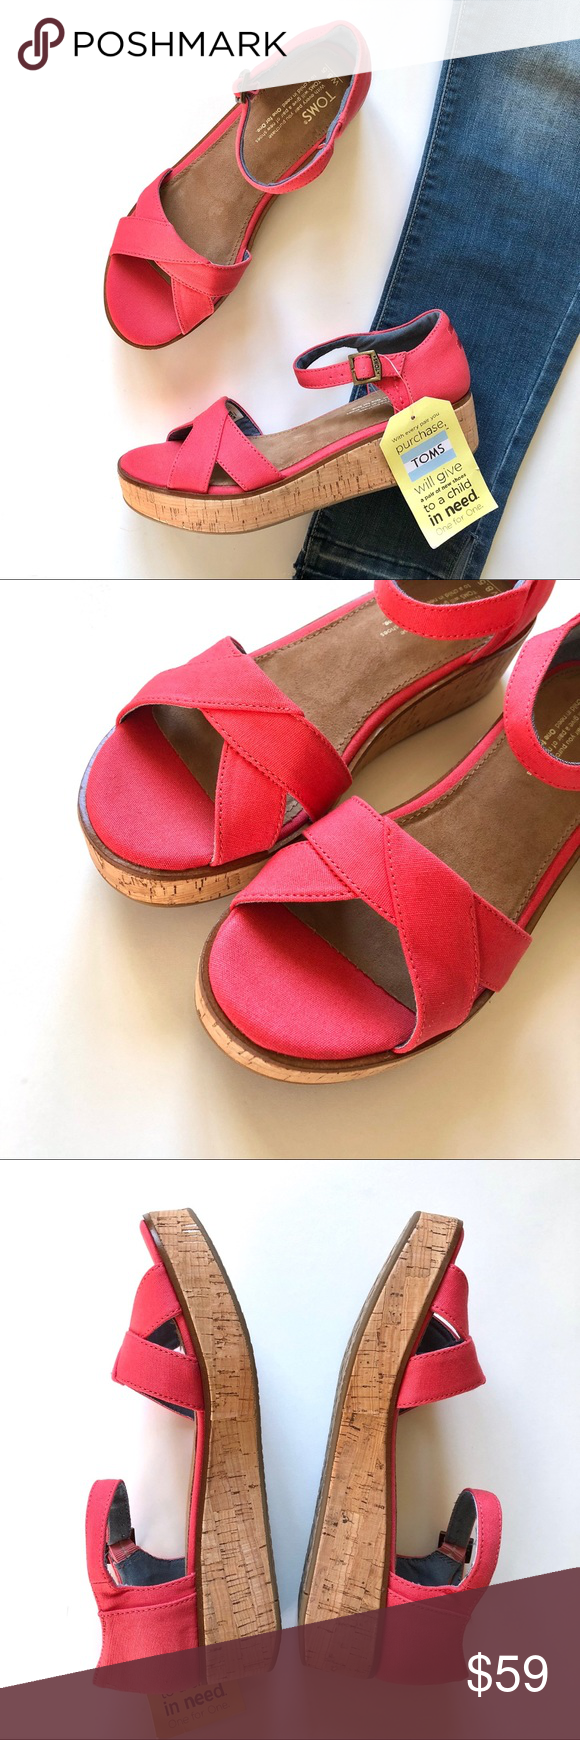 1d363f129f9b NWT TOMS Harper Coral Canvas Wedge Sandals Classic and preppy coral canvas  strappy wedge Harper sandals